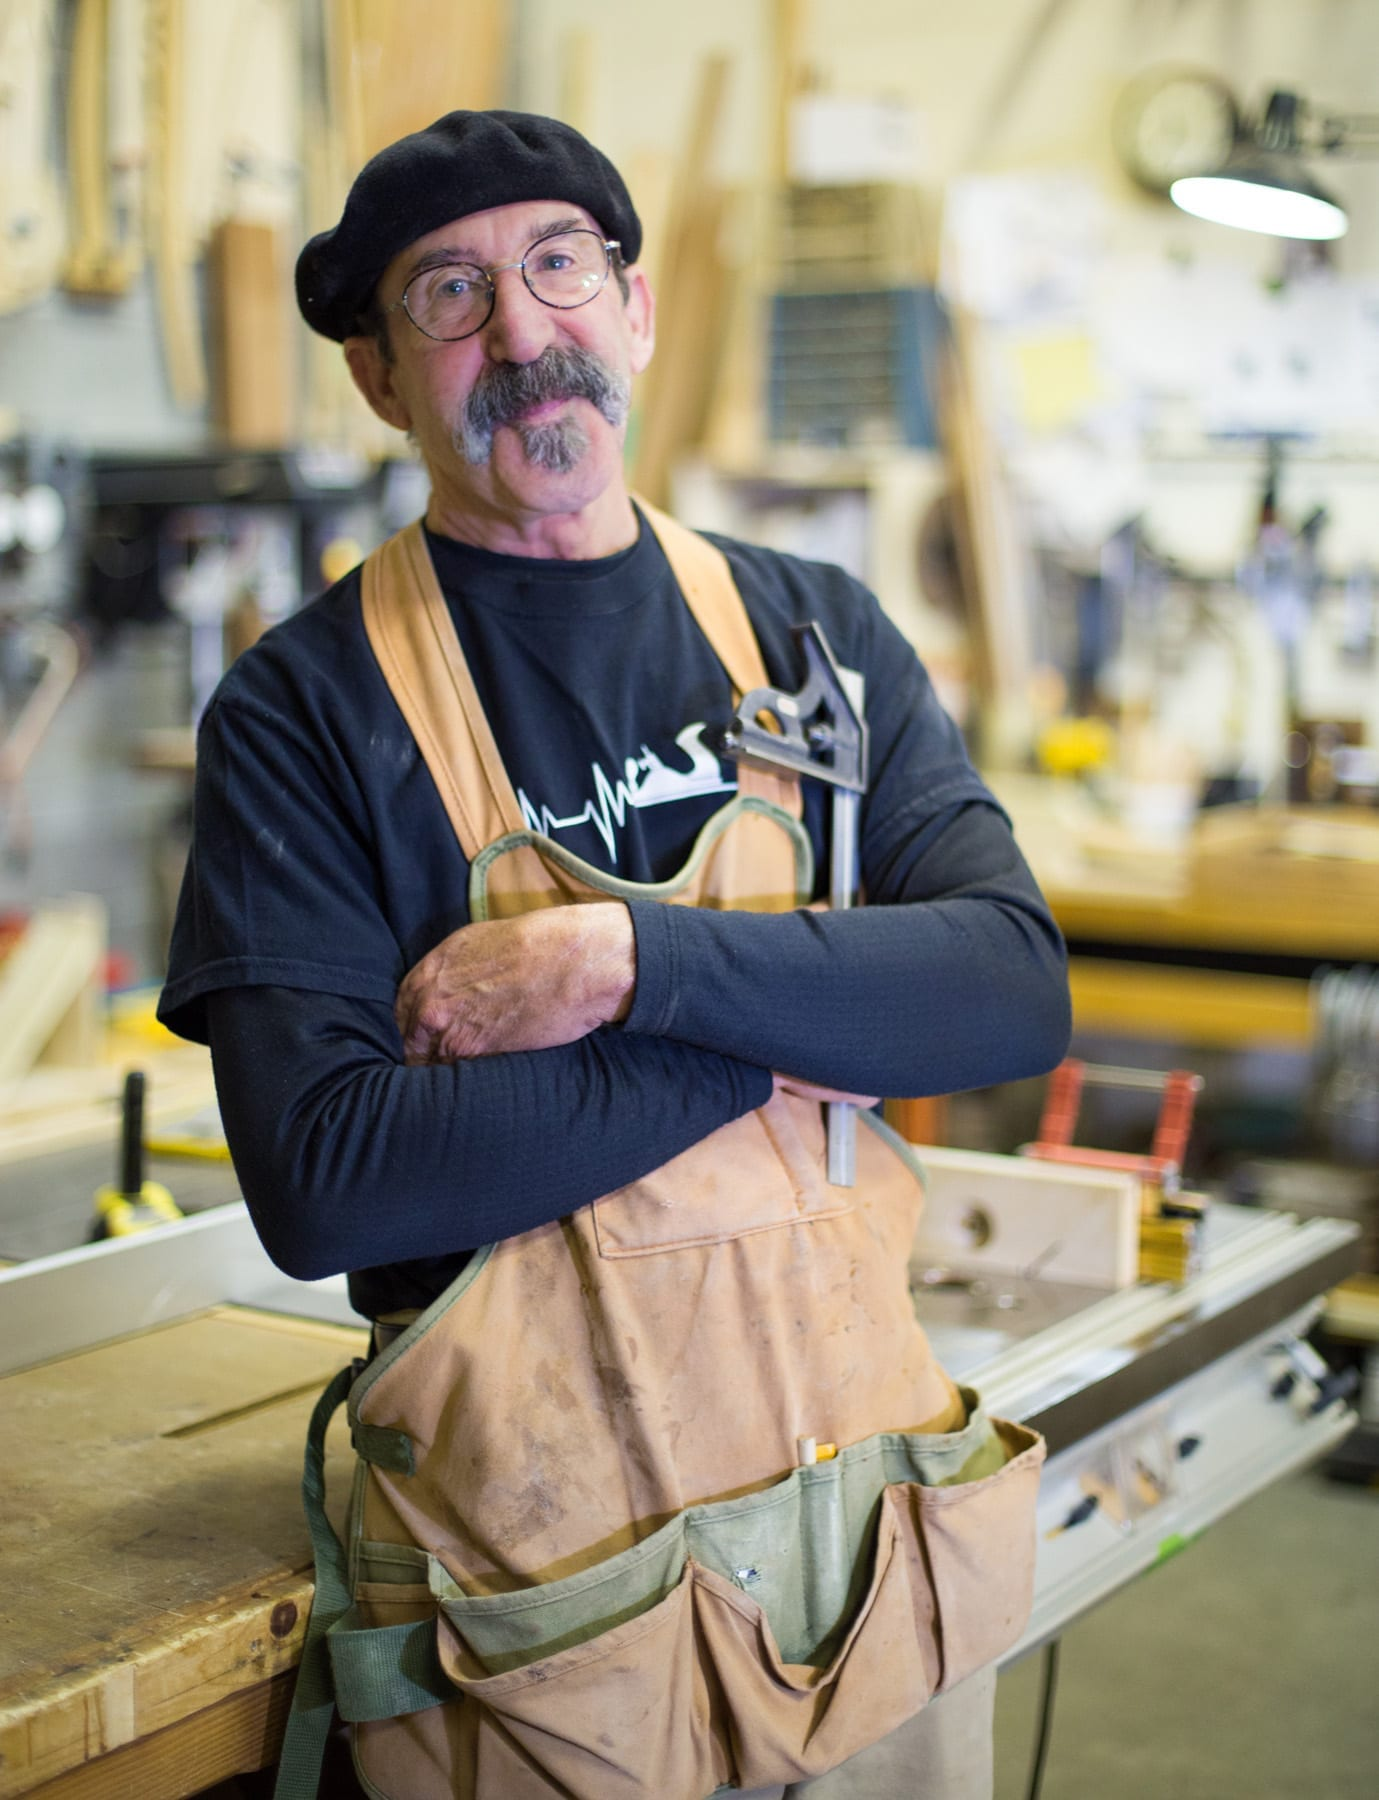 Woodworker and maker Thom Marchionna in Bend, Oregon